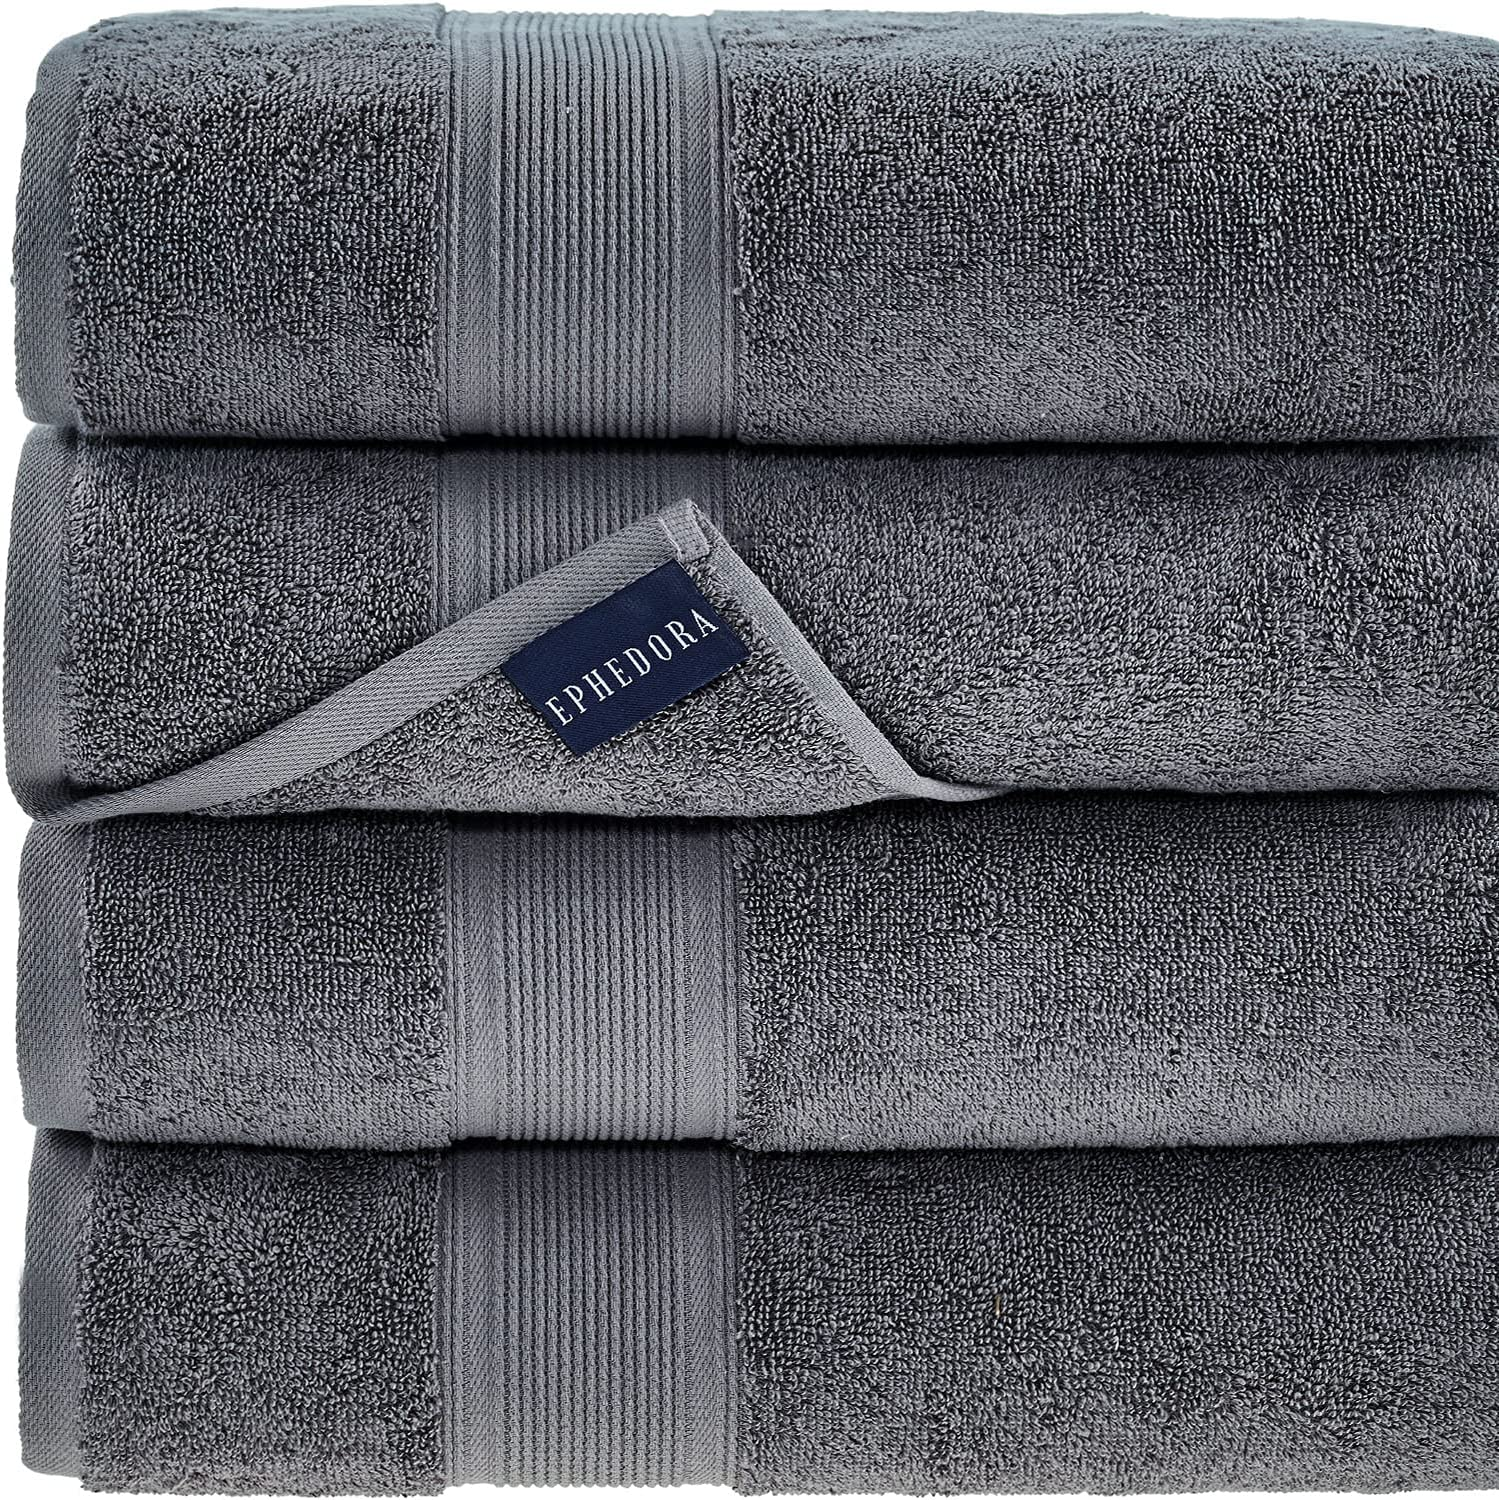 Turkish Cotton Bath Towels Light Grey | 600 GSM | Set of 4 Luxury Bath Towels | Large Sized for Hotels, Home, SPA, Gym | 27